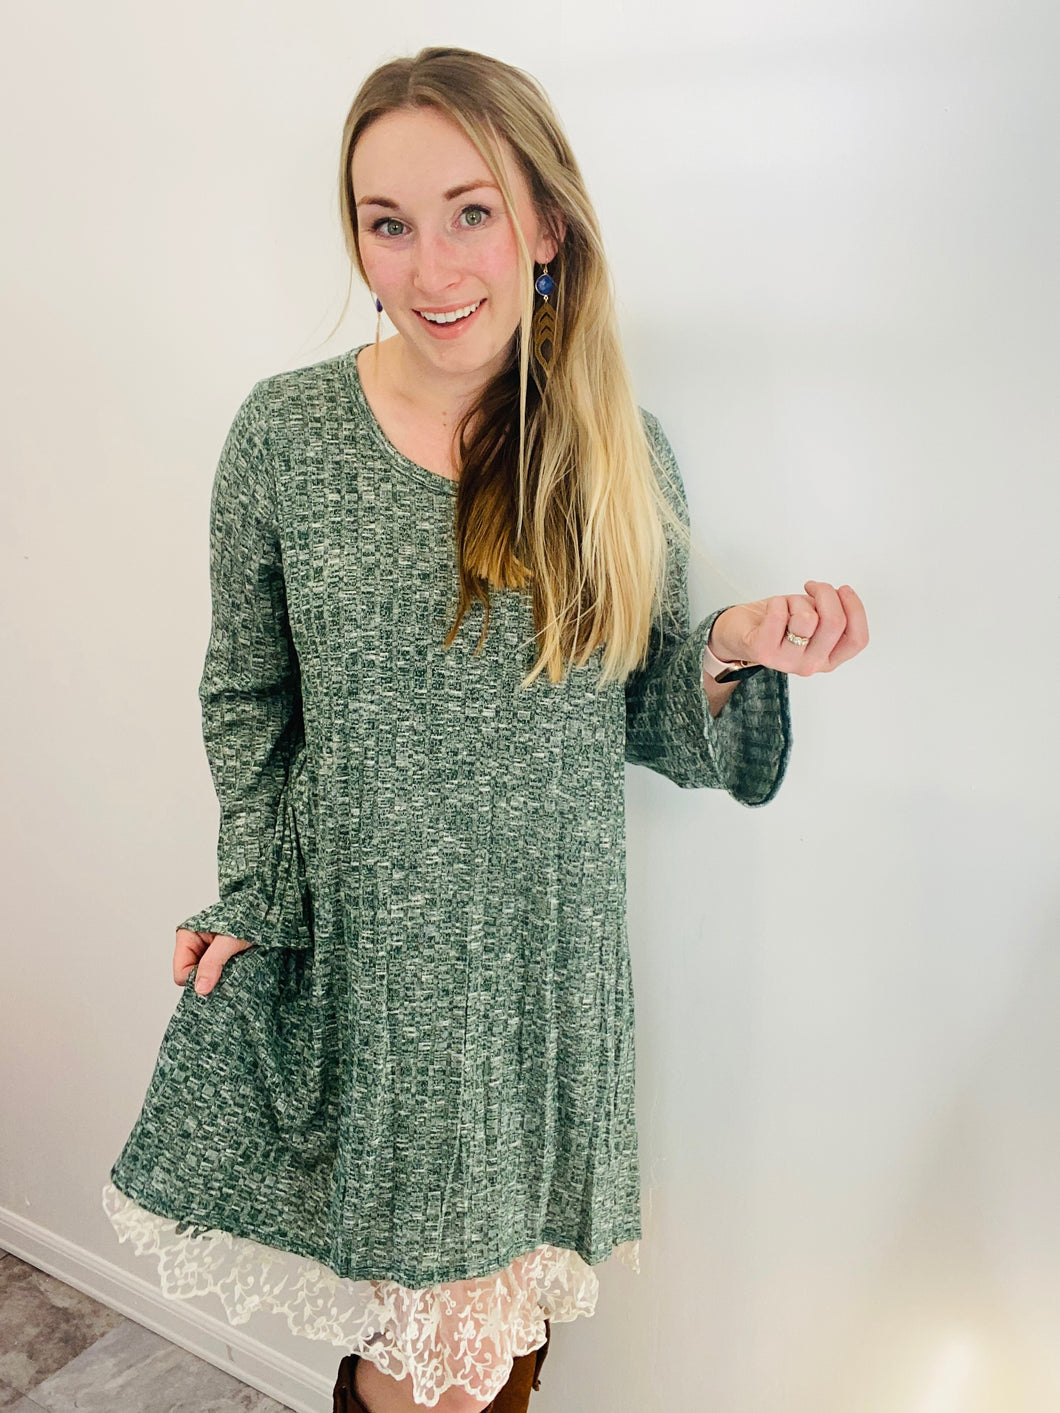 Ribbed Sweater Tunic in Green with Lace Underlay